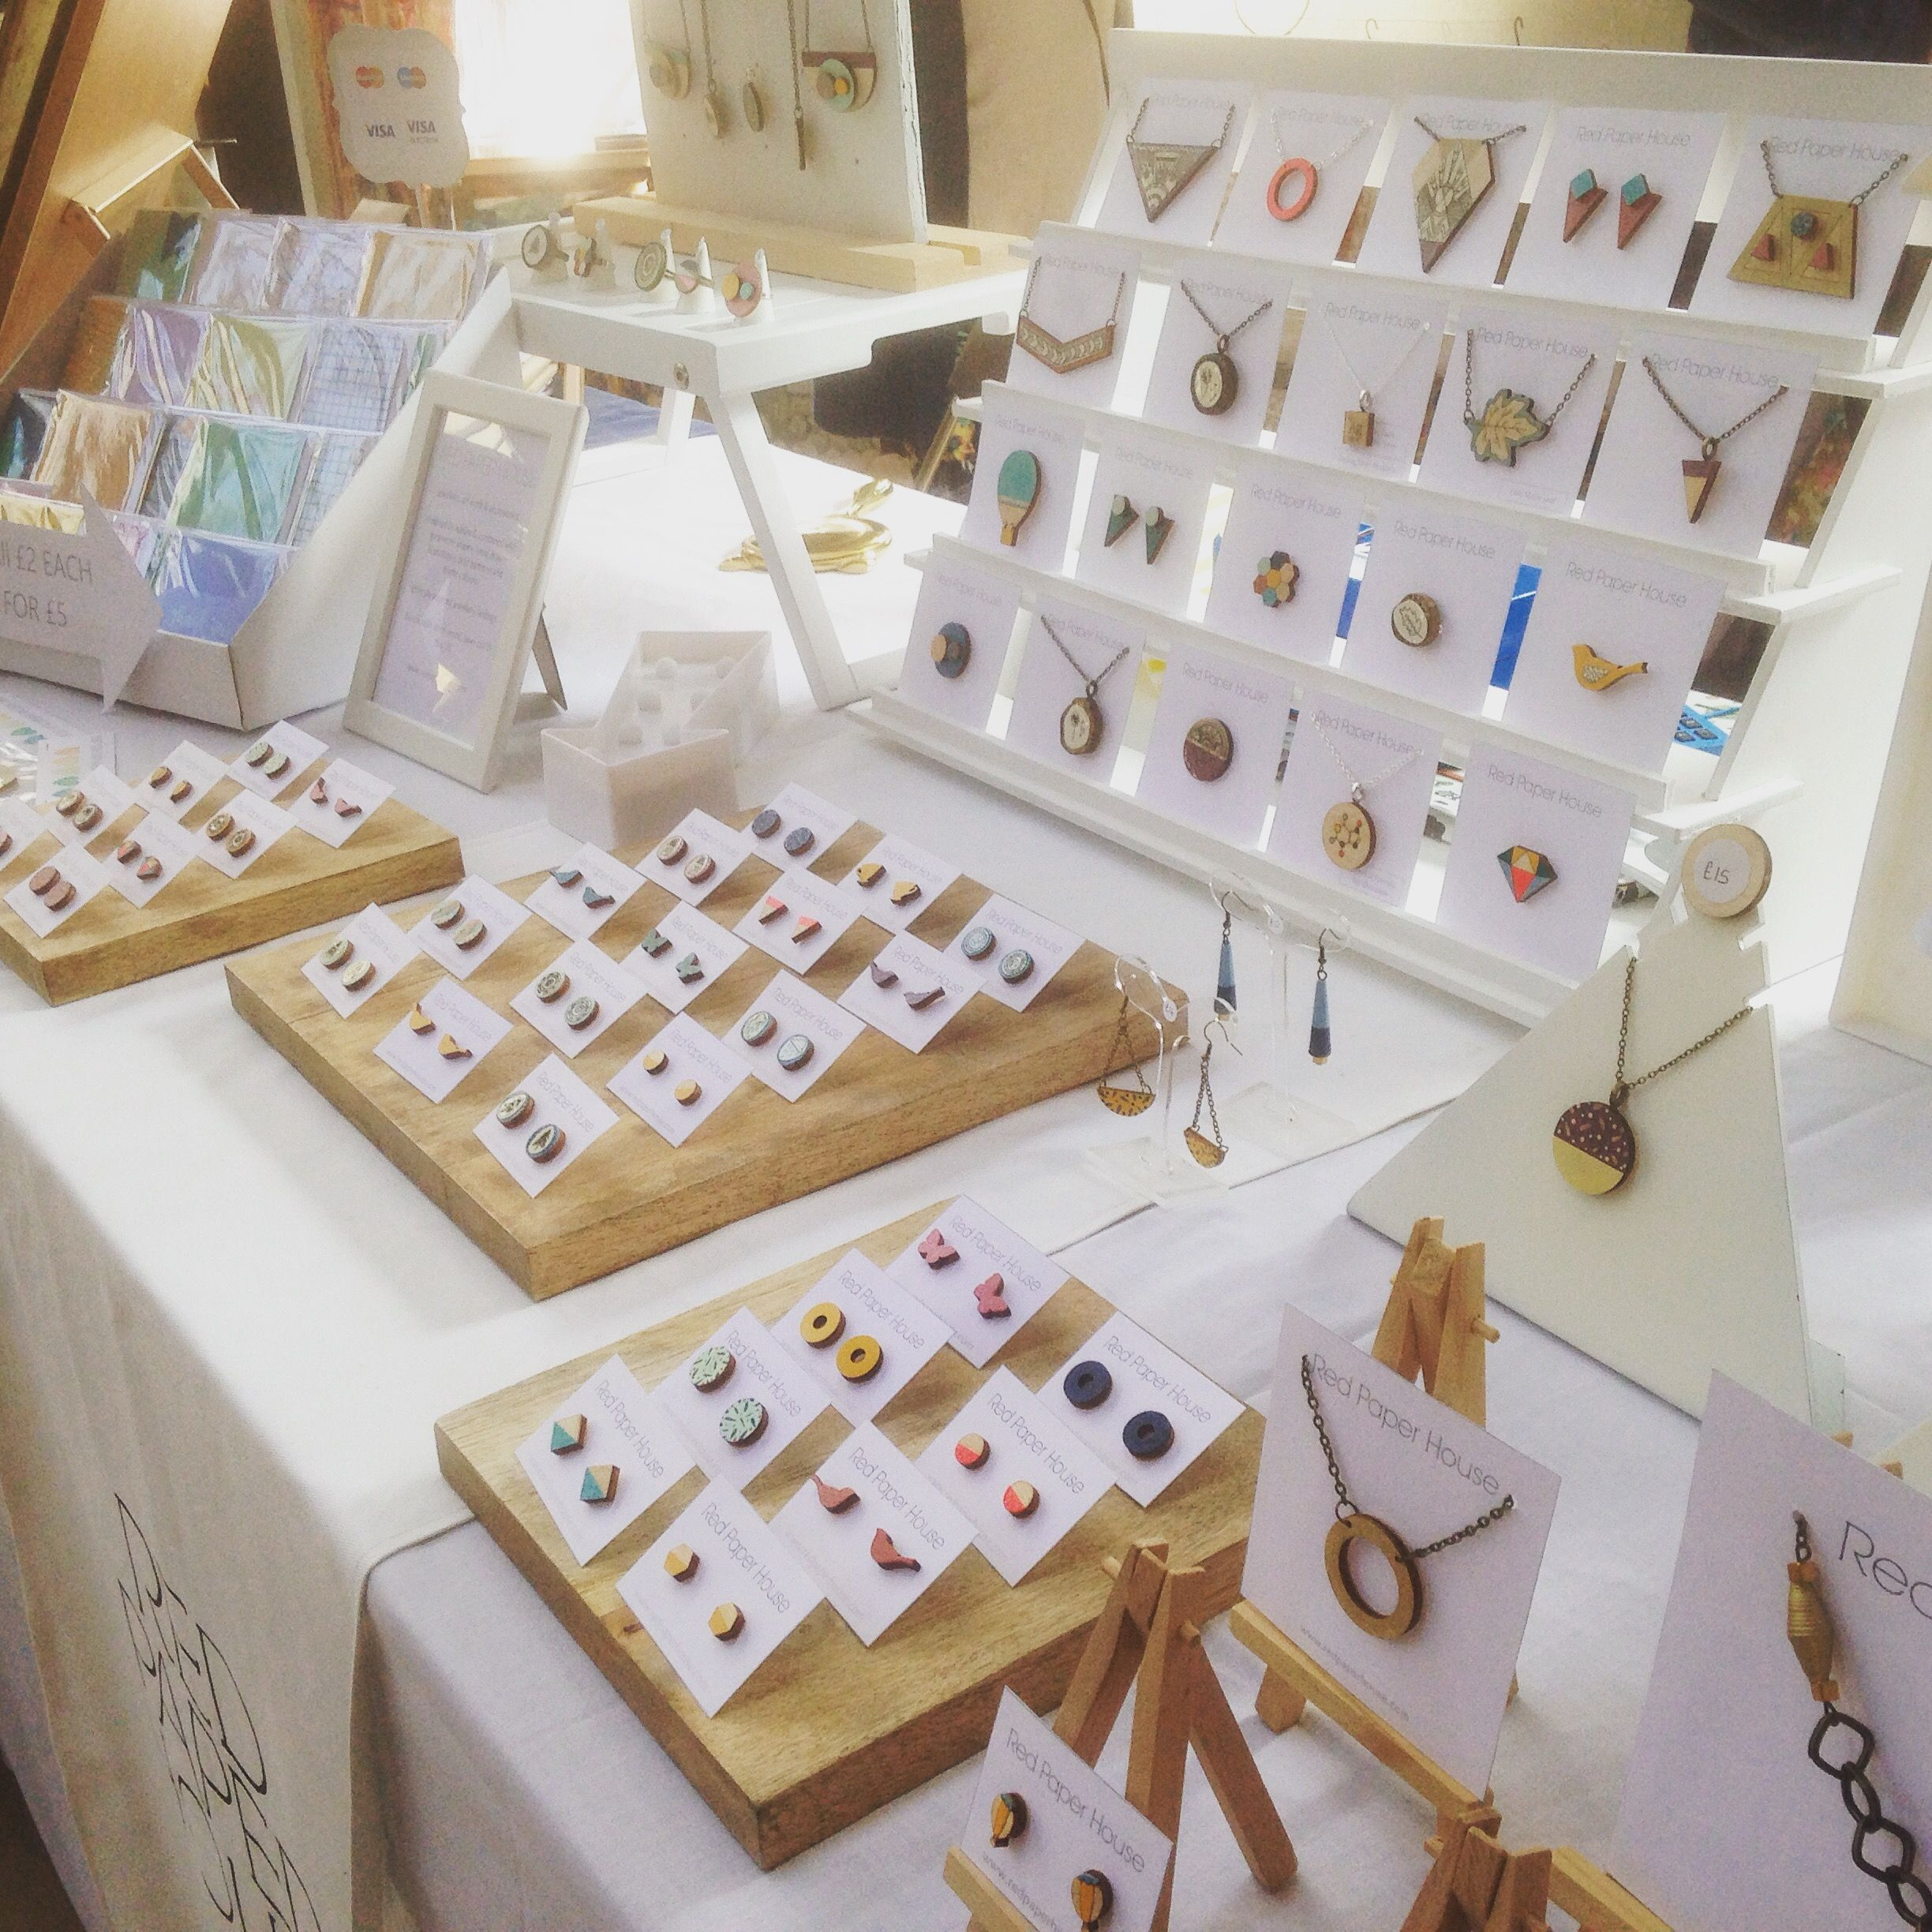 Pin by red paper house on red paper house craft fair displays craft fair displays shop displays red paper crafting summer fair handmade jewellery paper houses shops leeds jeuxipadfo Image collections